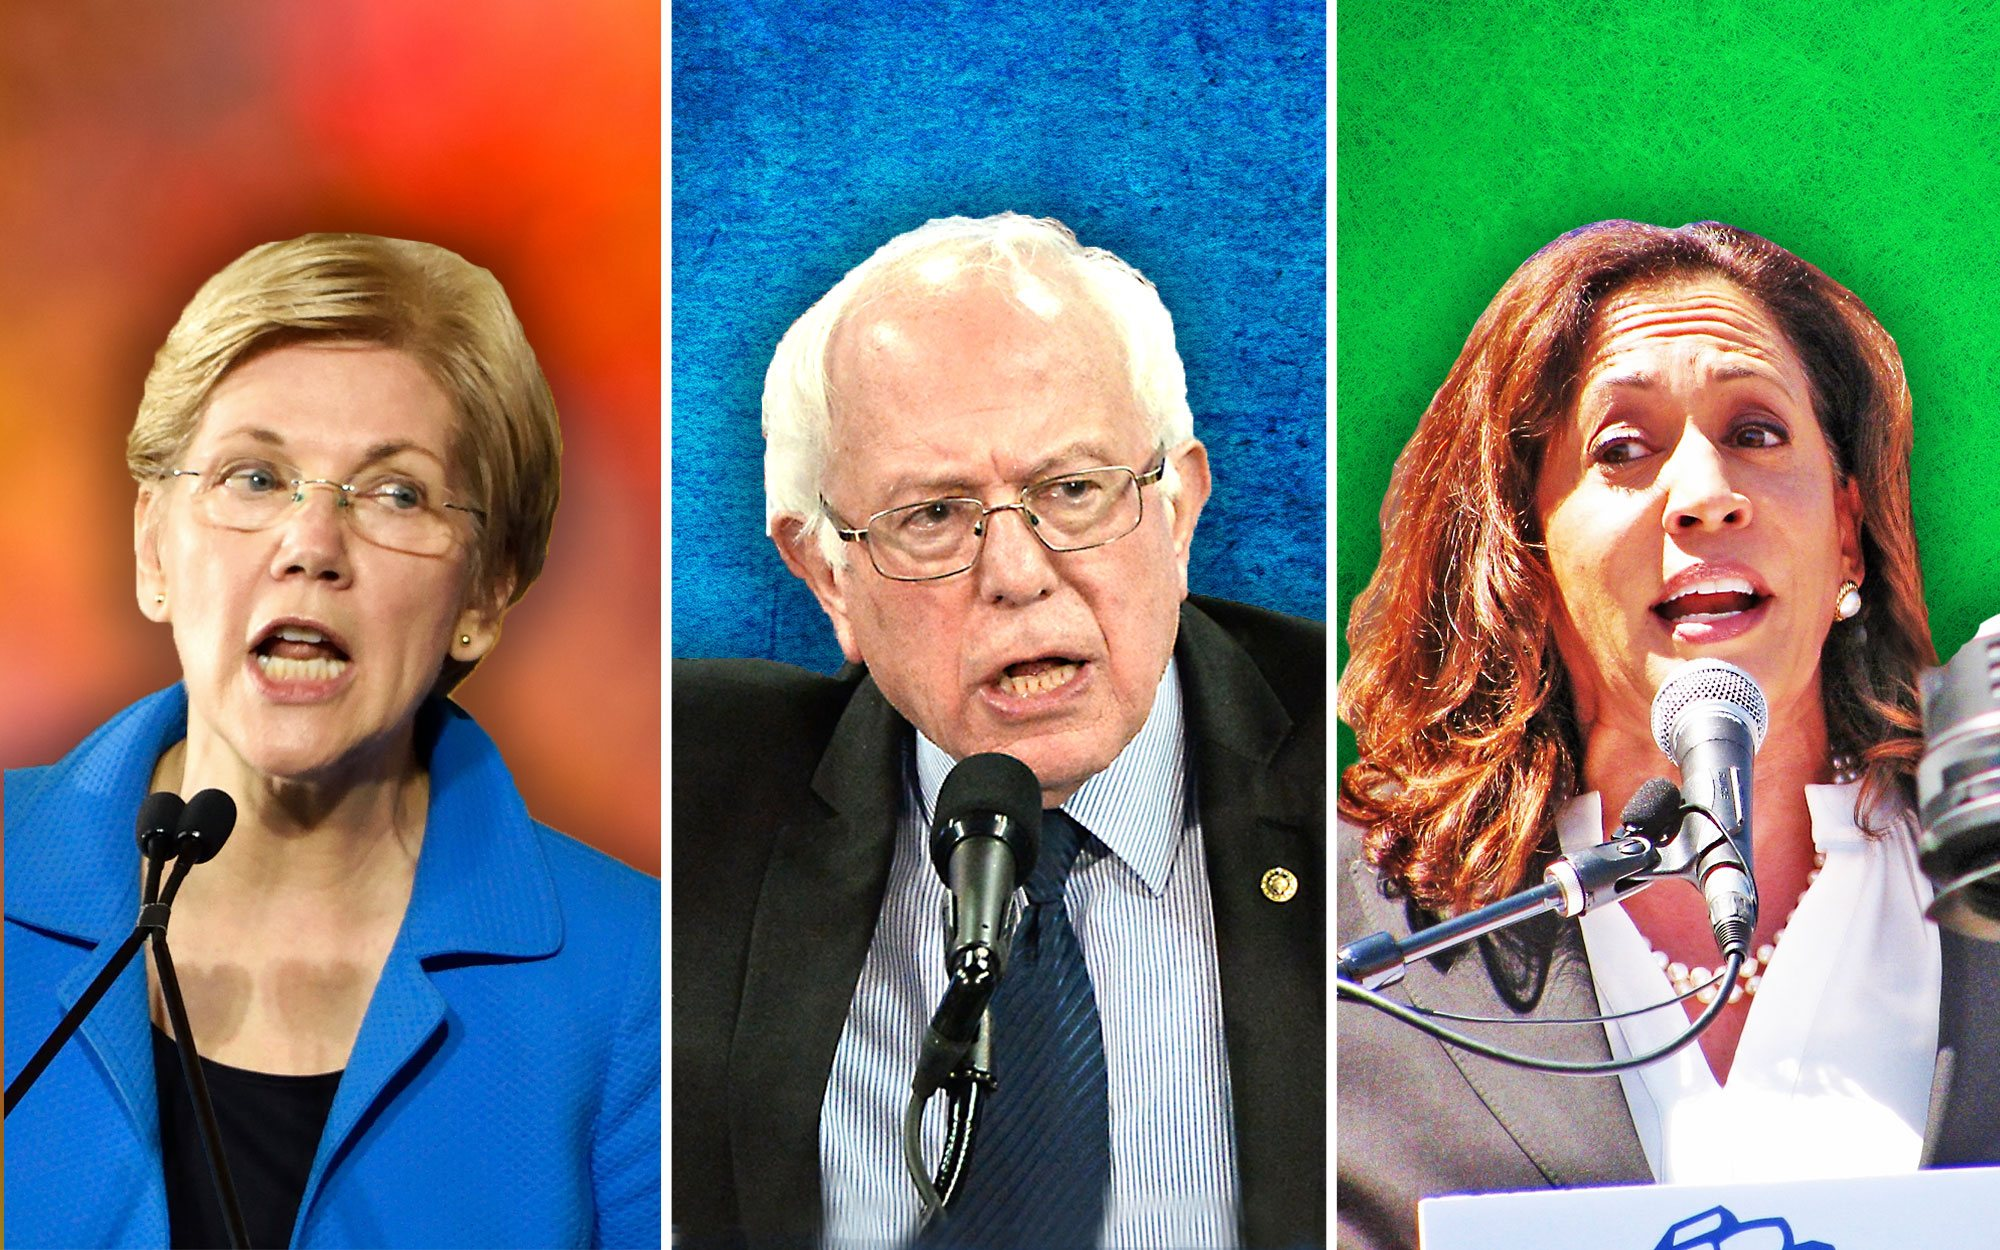 Democrats Compete to Outdo Each Other in the 'Radicalization Olympics'